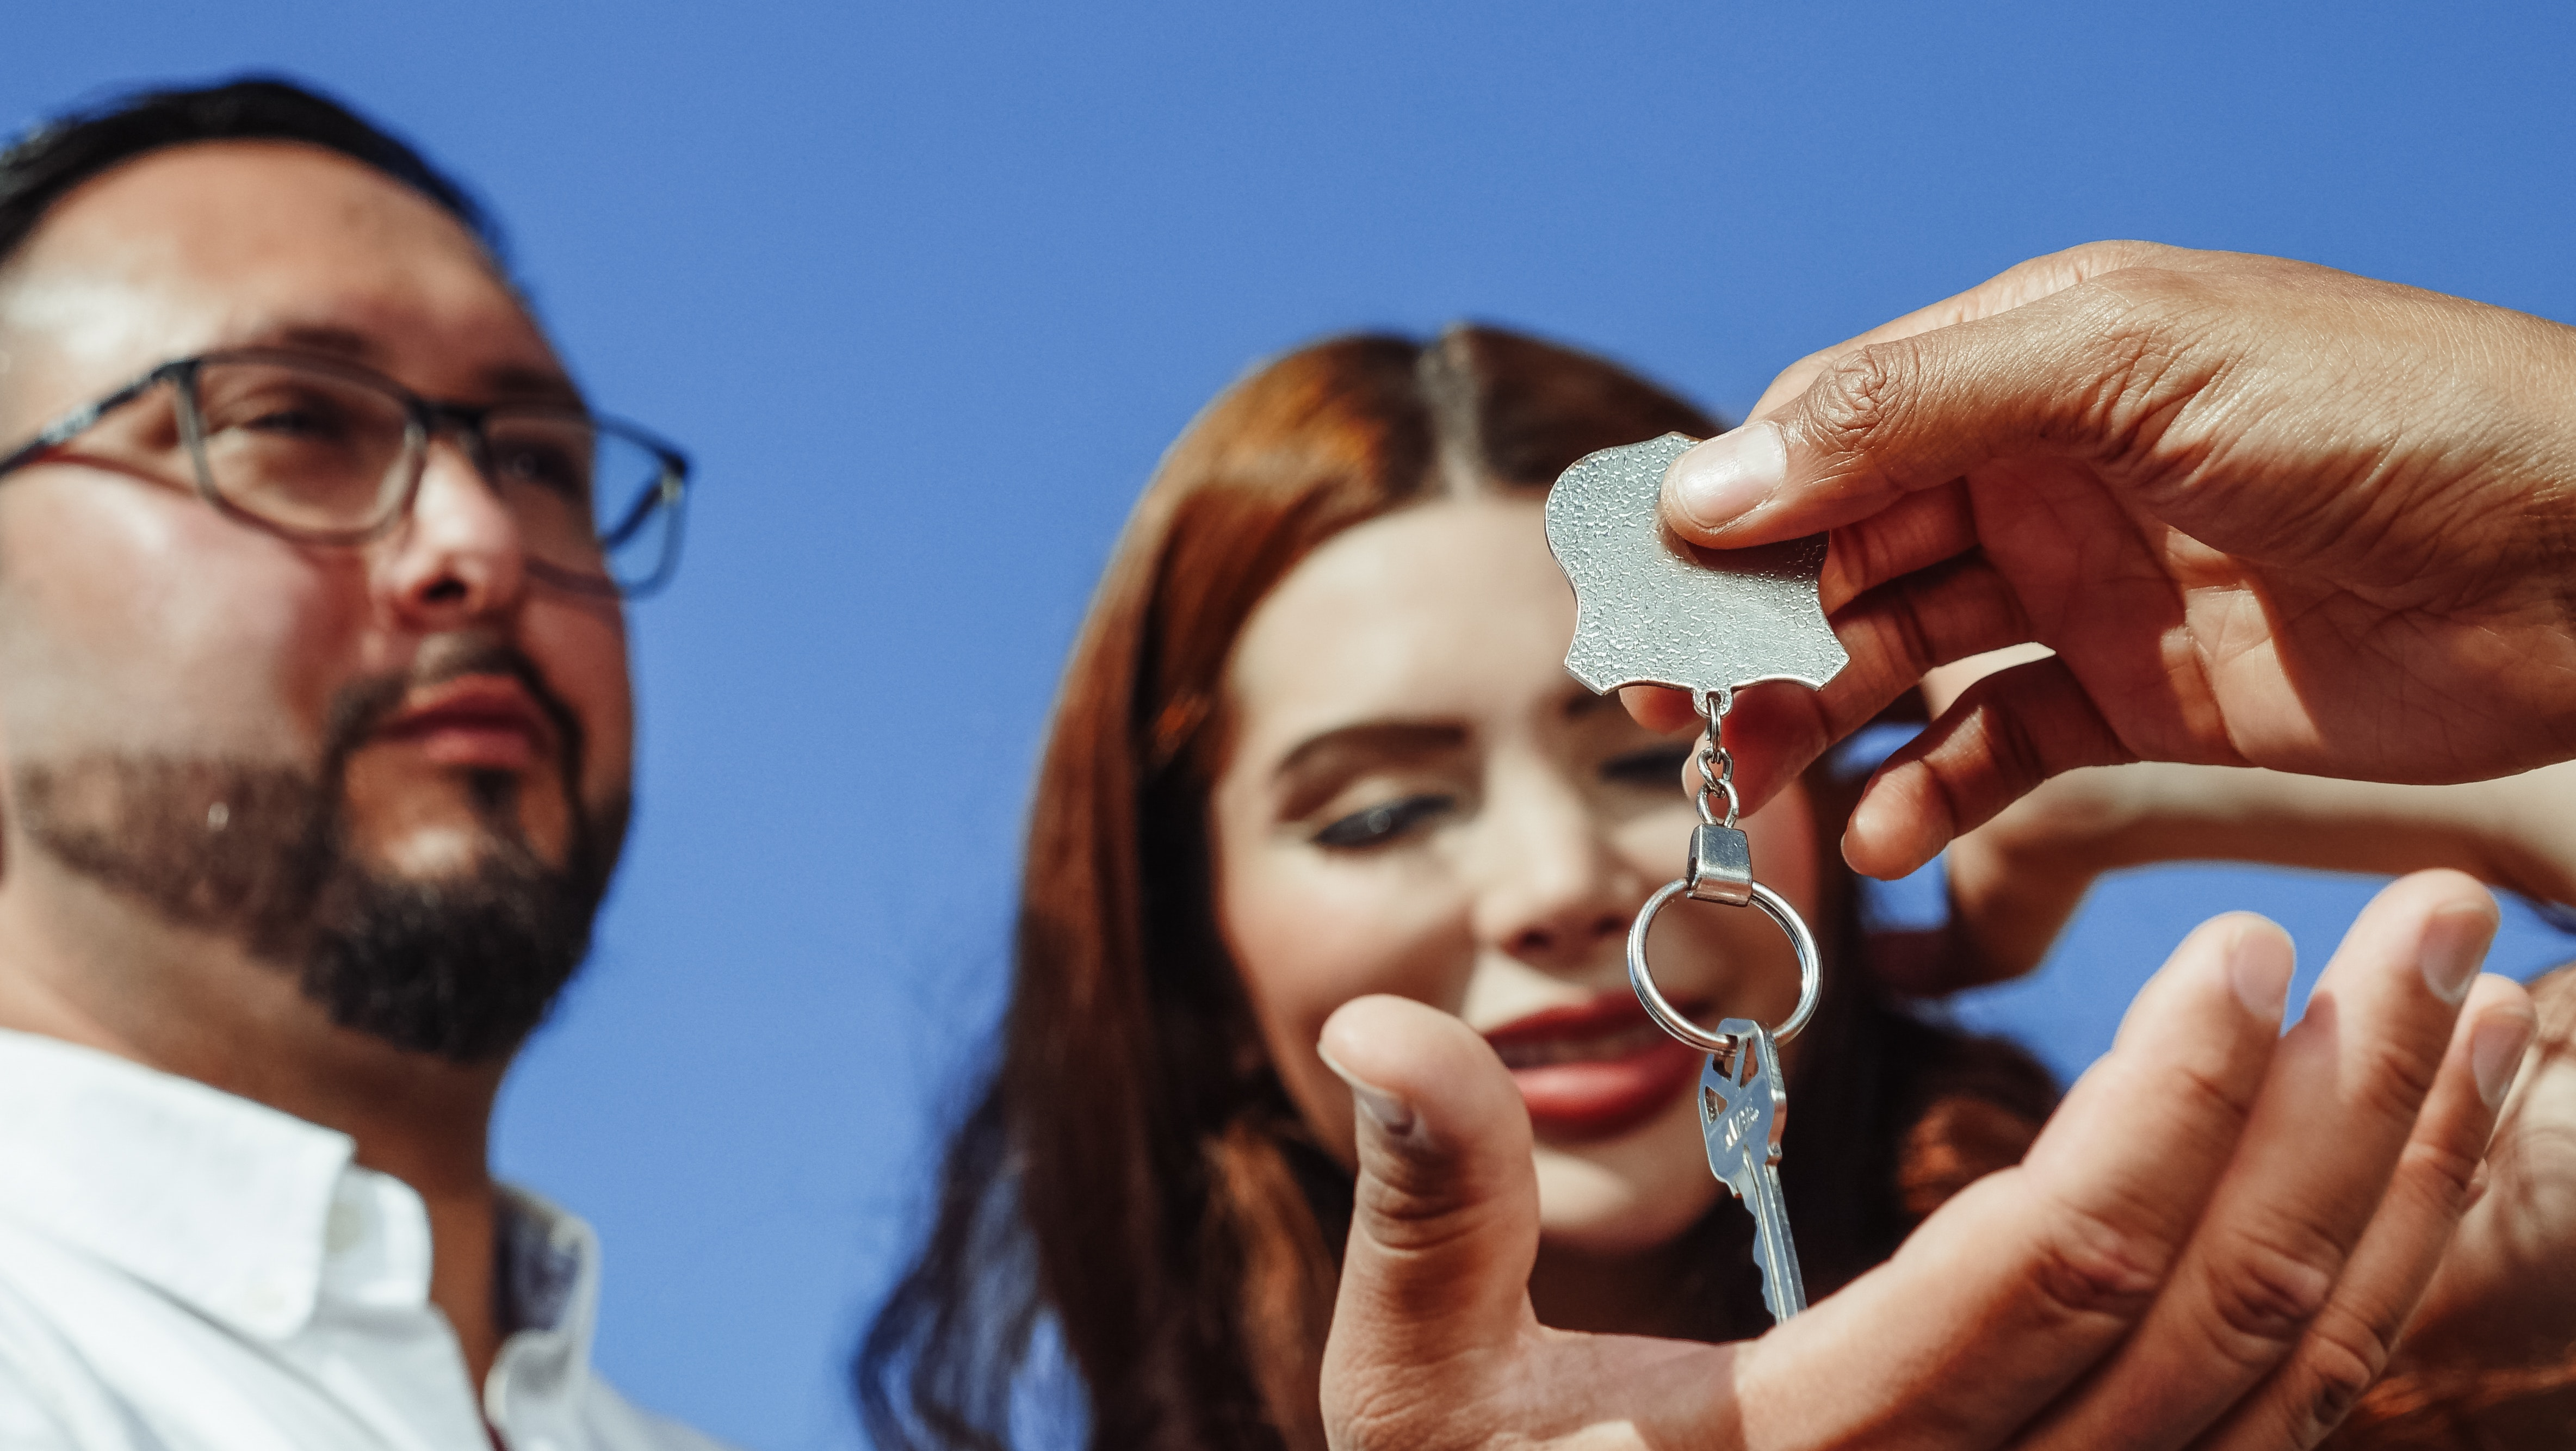 Home Buyers Receiving Keys To Their New House